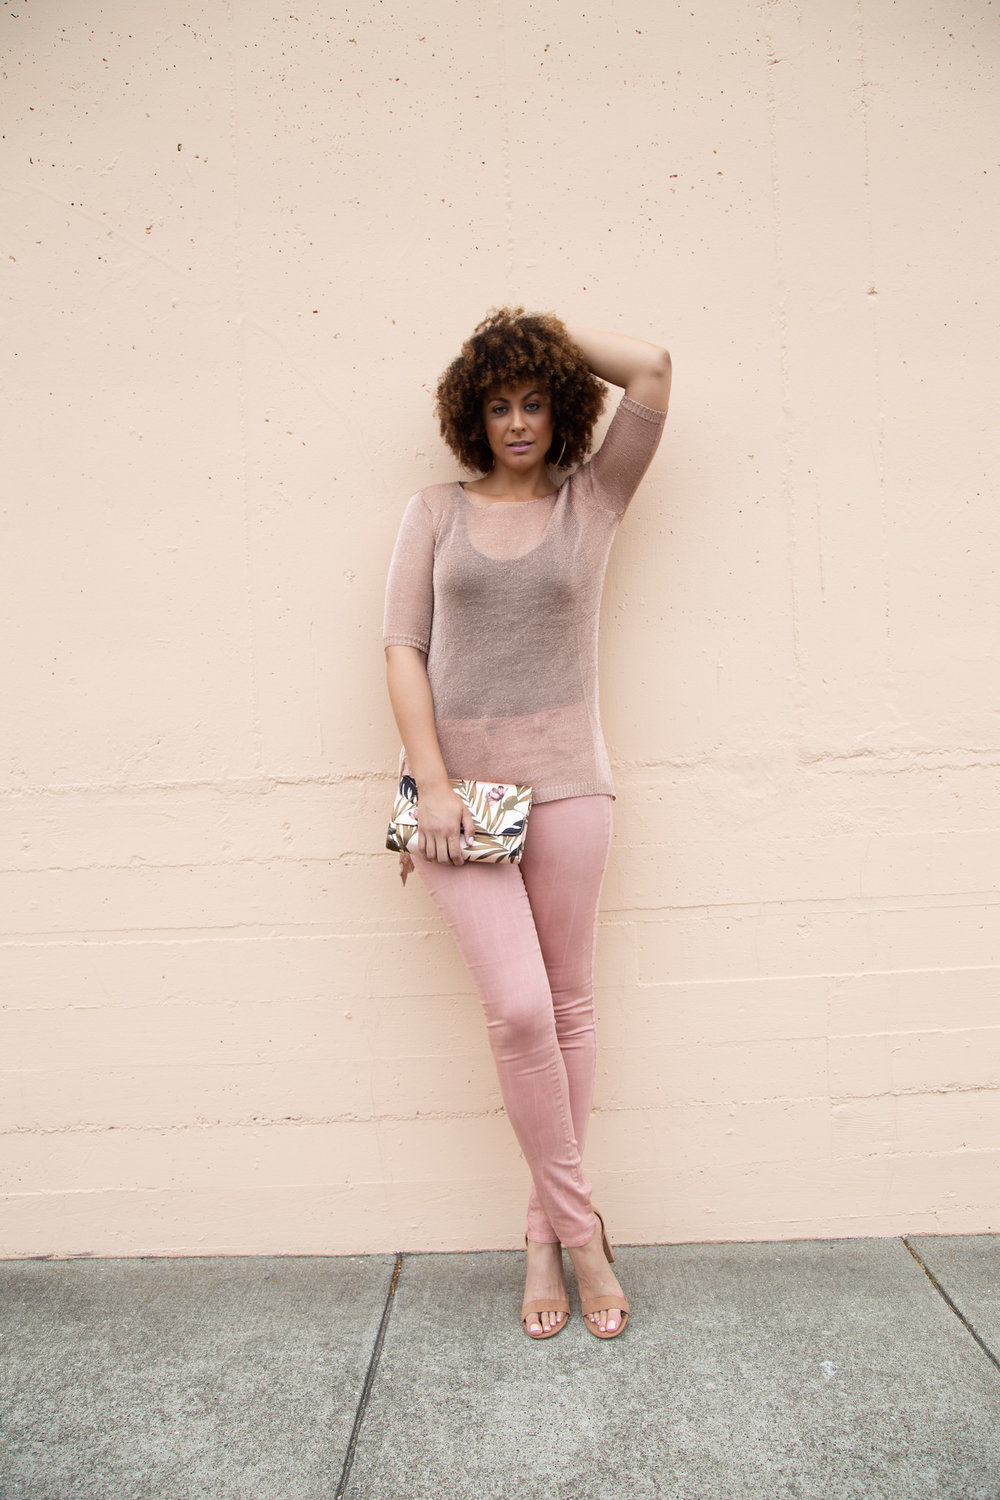 Siena High Waist in Blush - Alloy Apparel  |  Emily Rose Metallic Top - Alloy Apparel  |  Erma High Block Heel Pumps (shown in size 12) - Target    Photo by Lakeela Smith